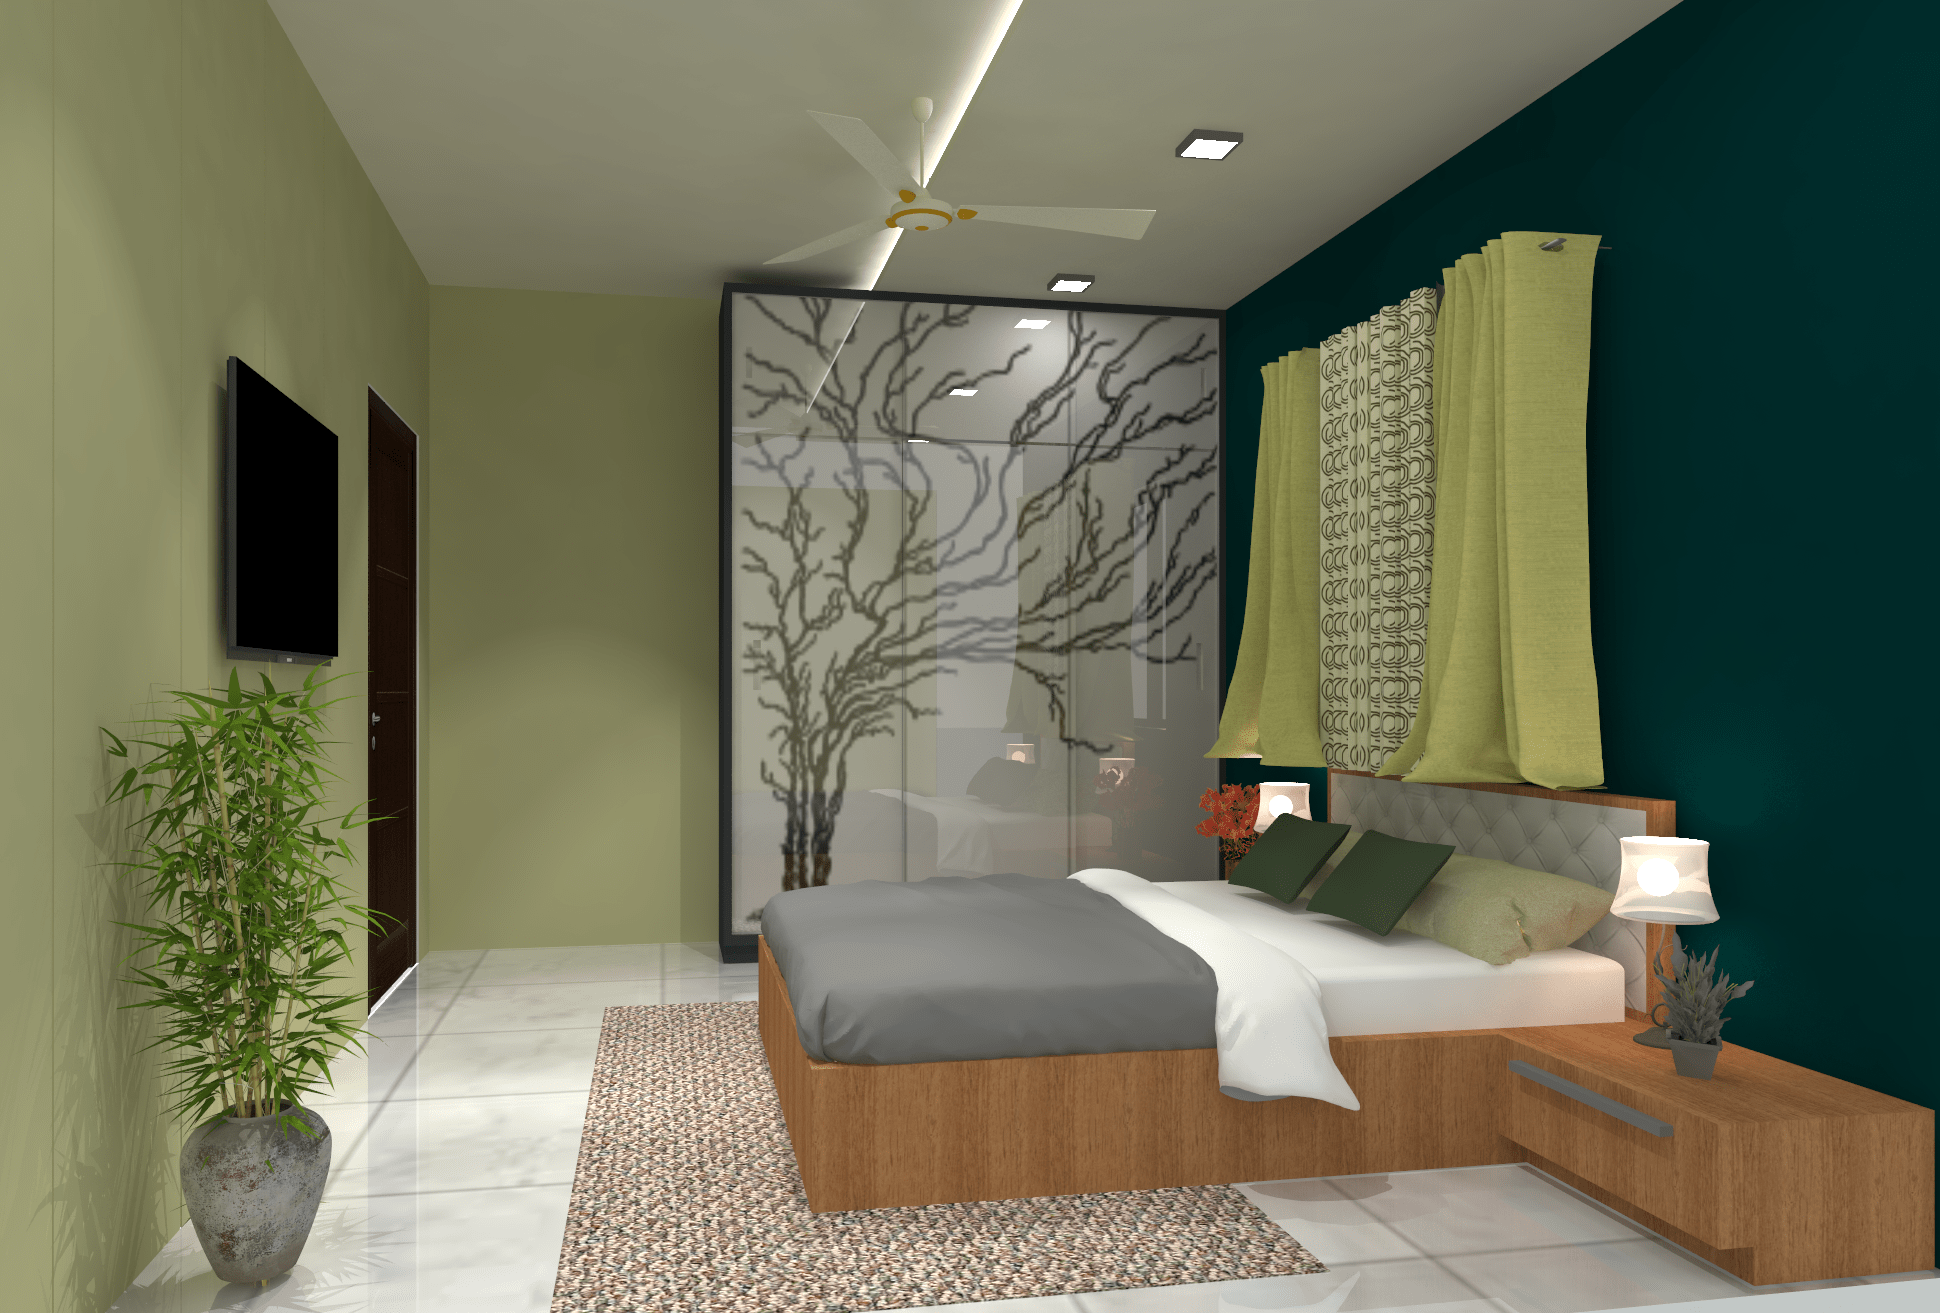 Apartment Bed room Interior Design - V M Park Brahmapur Odisha - Mr.Bichitra Patnaik